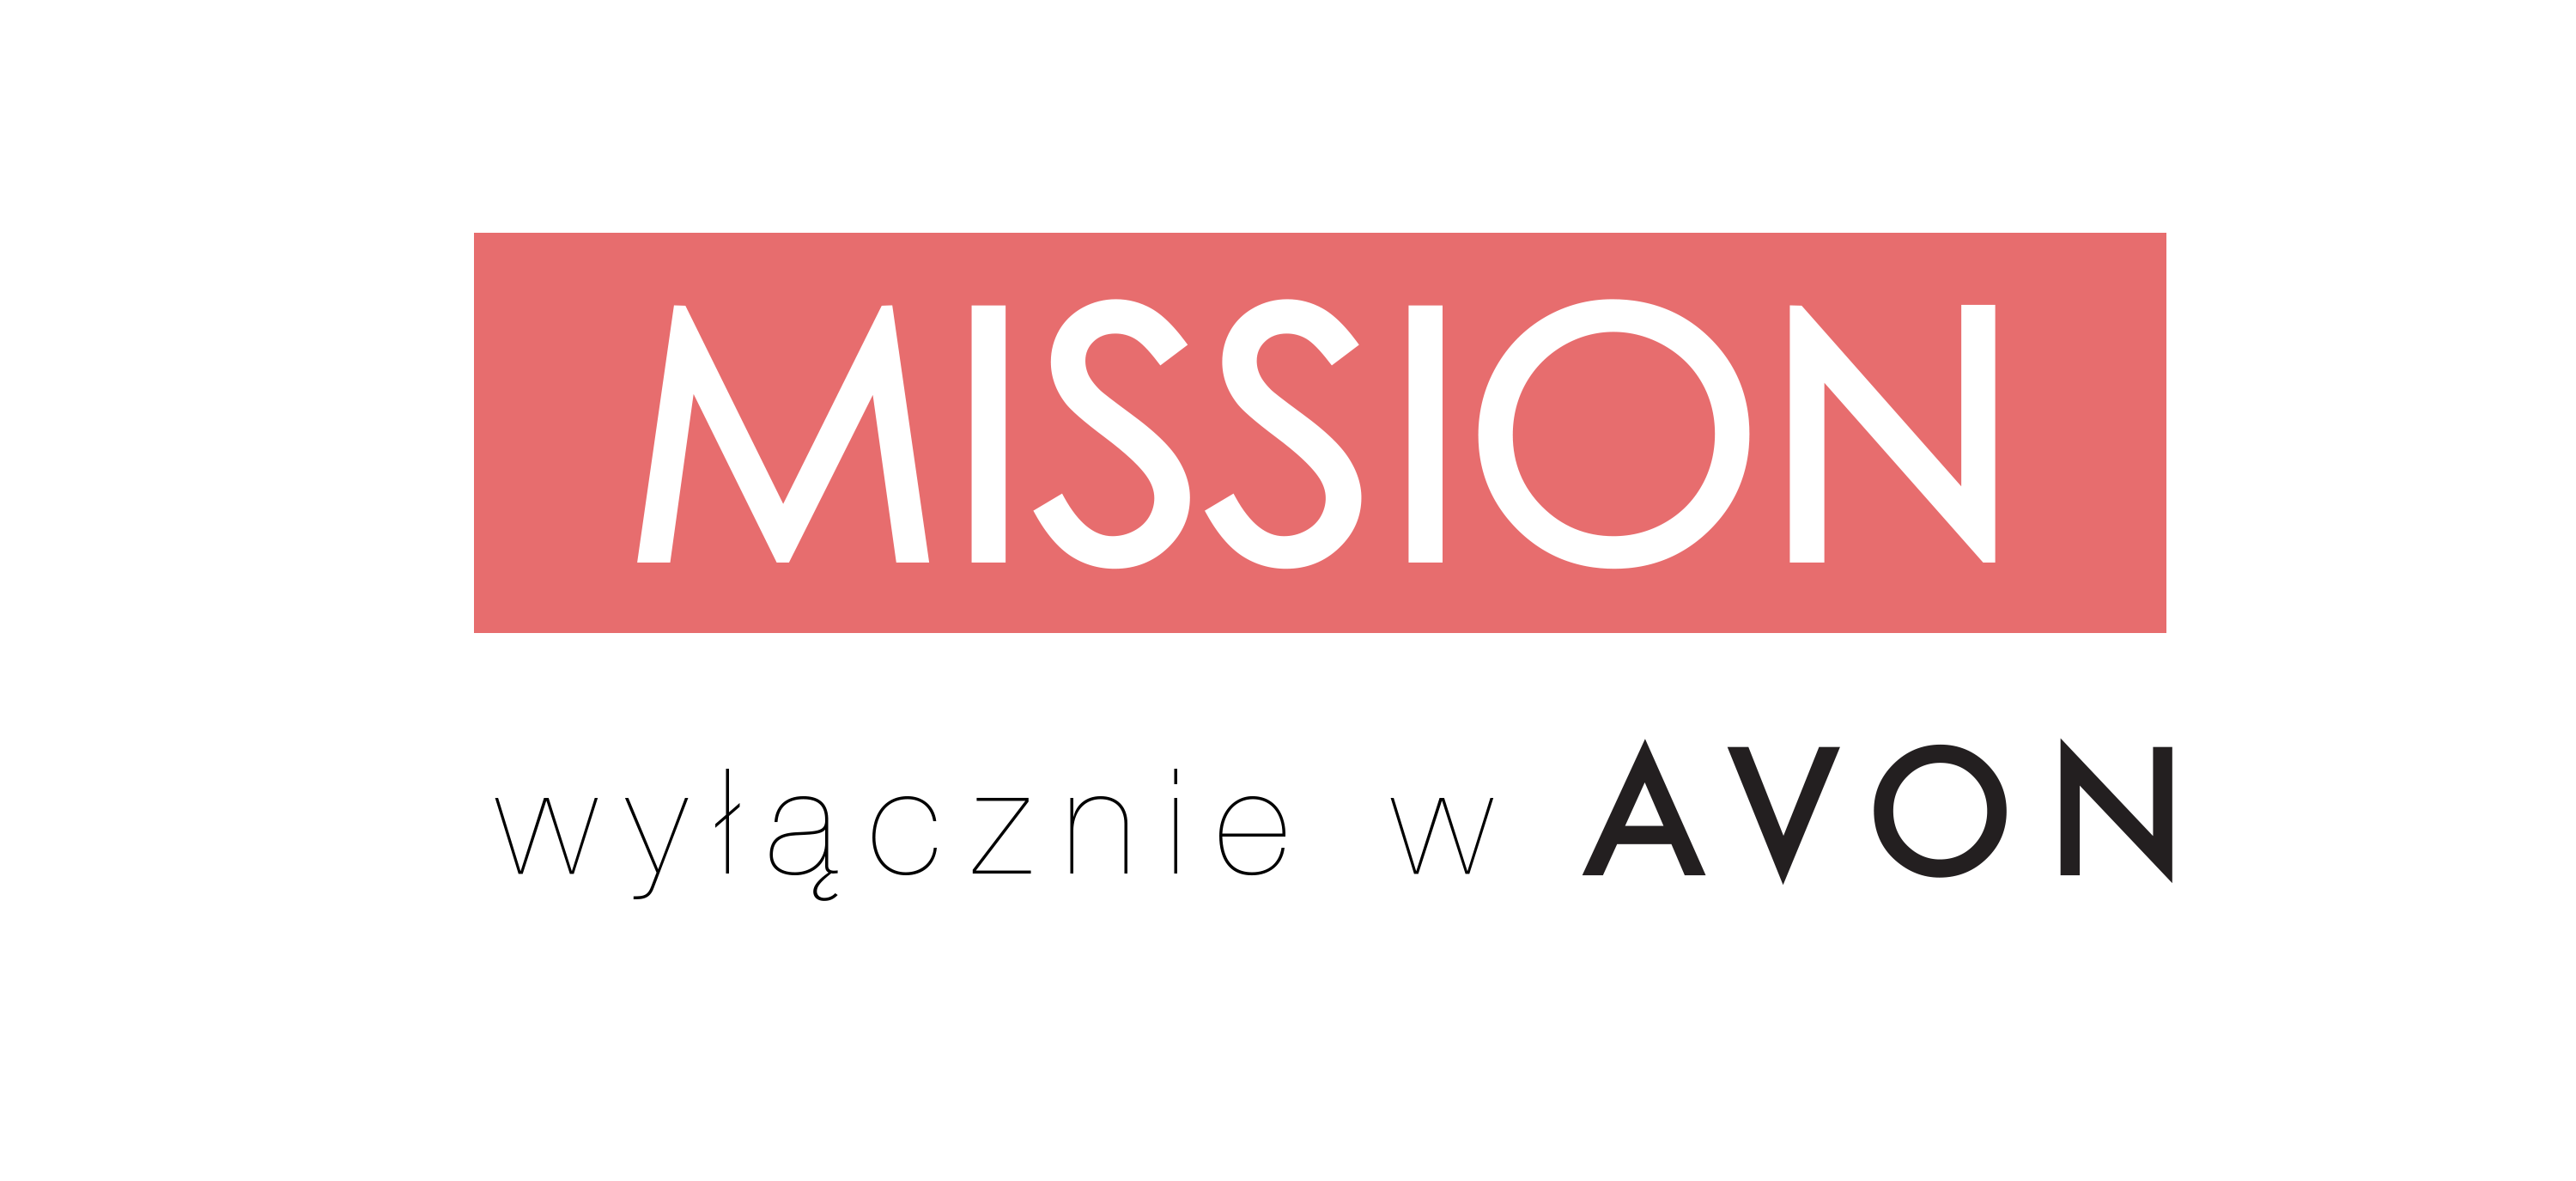 MISSION by AVON